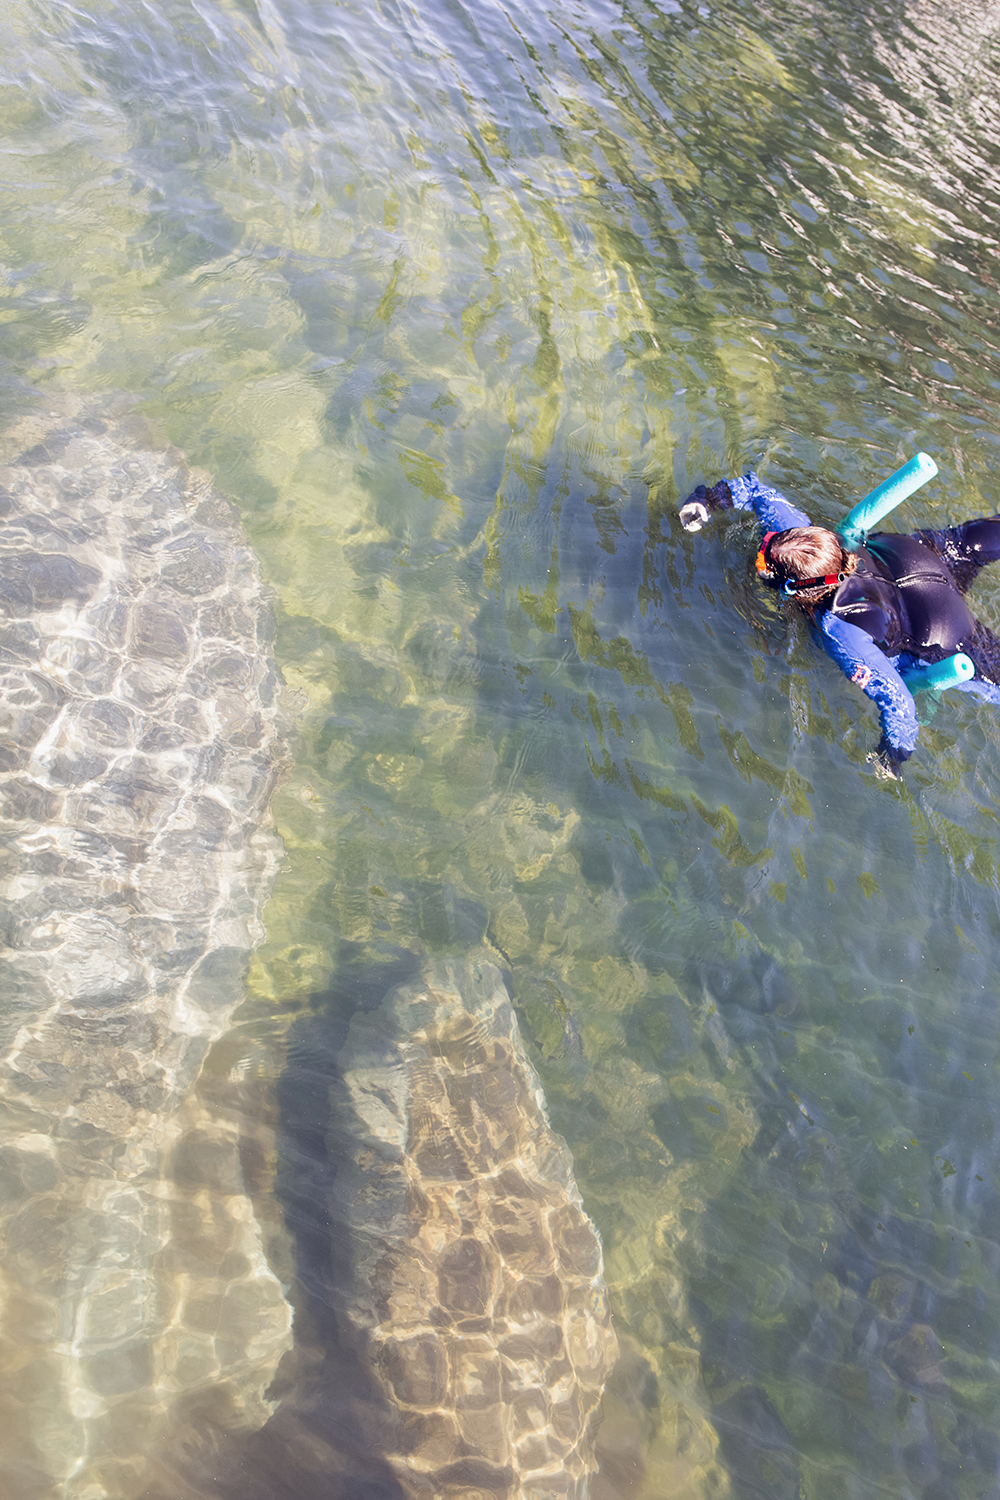 Have you ever snorkeling with the manatees in Florida? Have you ever wanted to go snorkeling with the manatees with kids? Check out my tour recap with tips on snorkeling with the manatees! #CrystalRiver #Homosassa #SnorkelingWithManatees